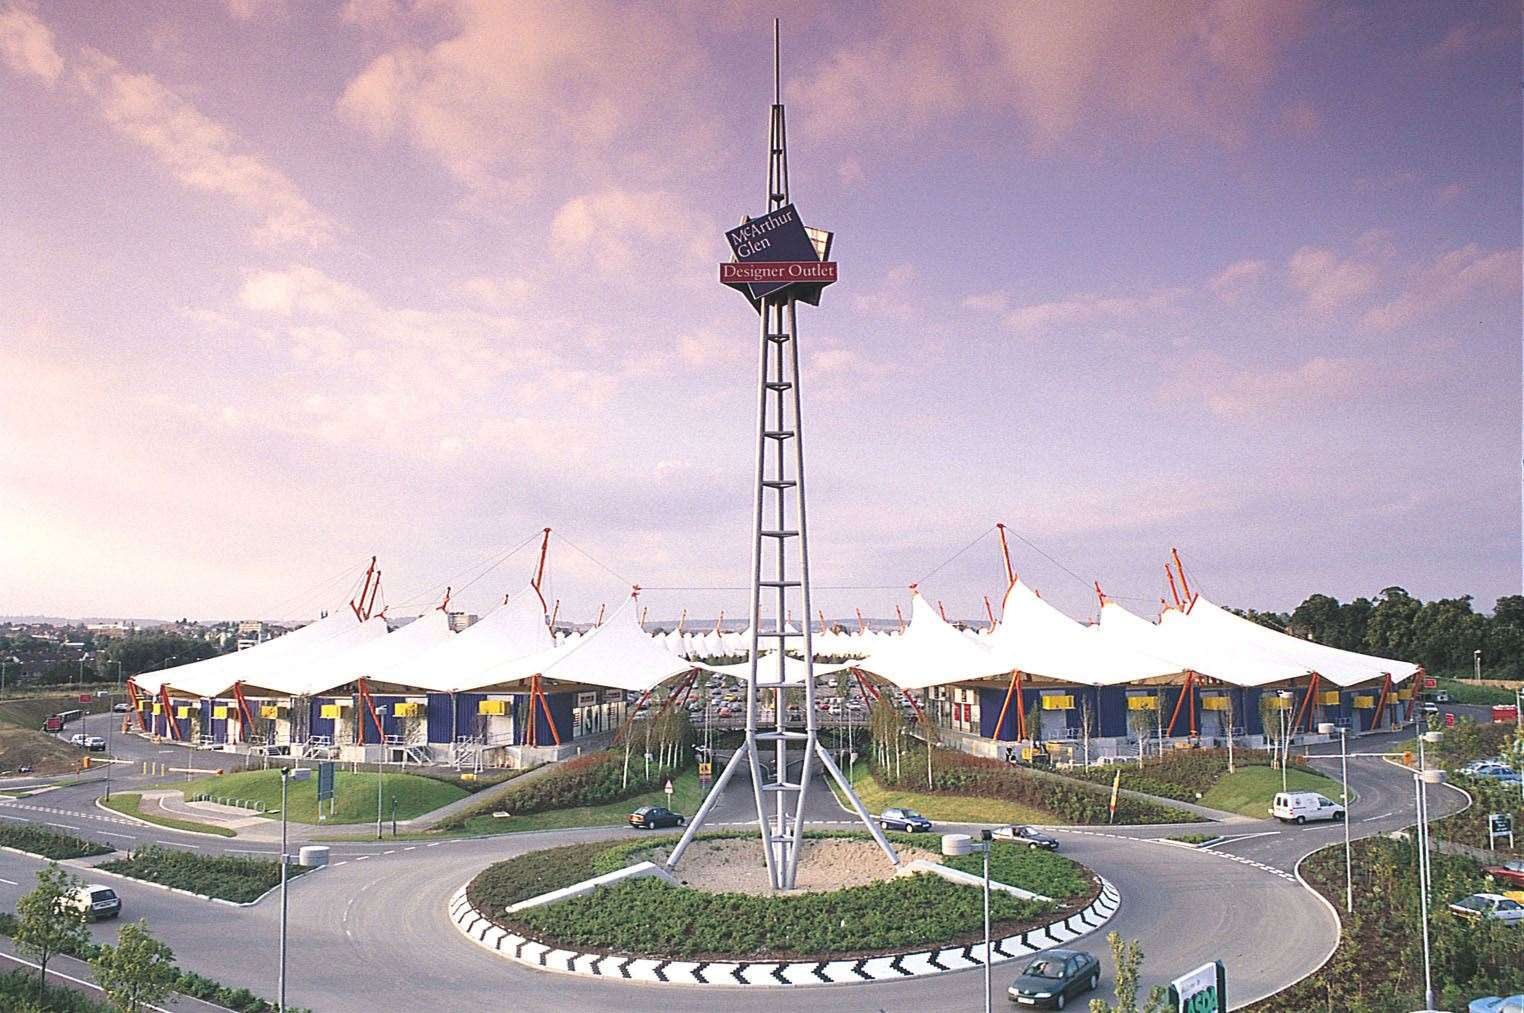 The Ashford Designer Outlet in March 2000 - just before it opened. Copyright: City Press Services Ltd